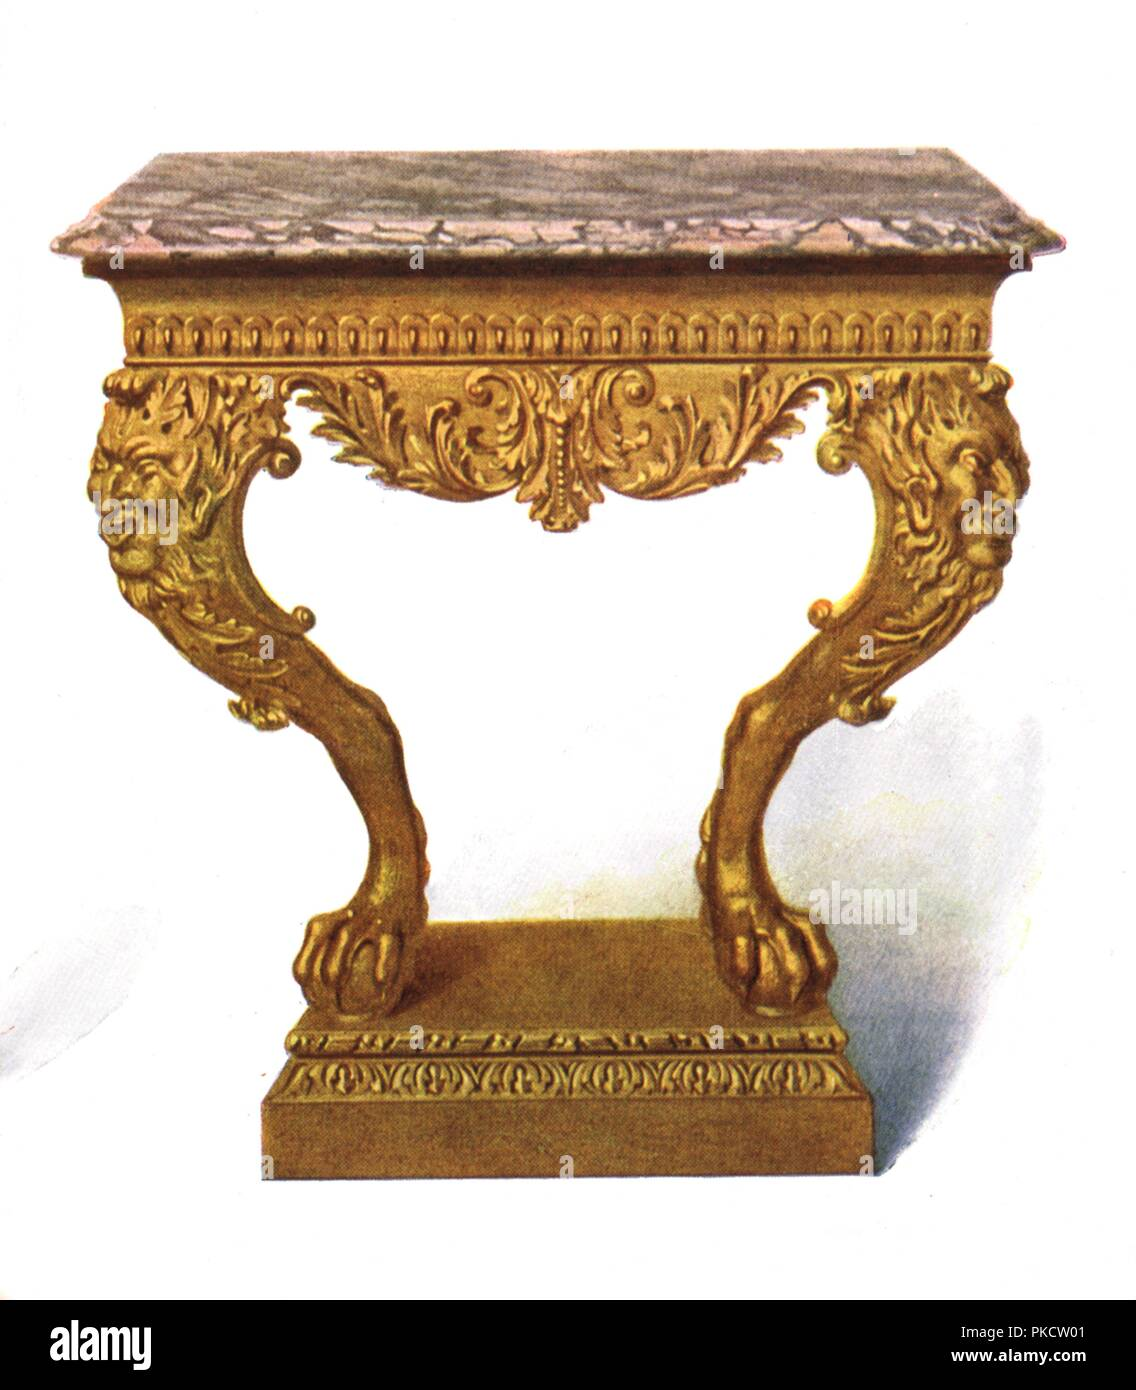 Gilt Console Table, 1906. Print From A History Of English Furniture, The